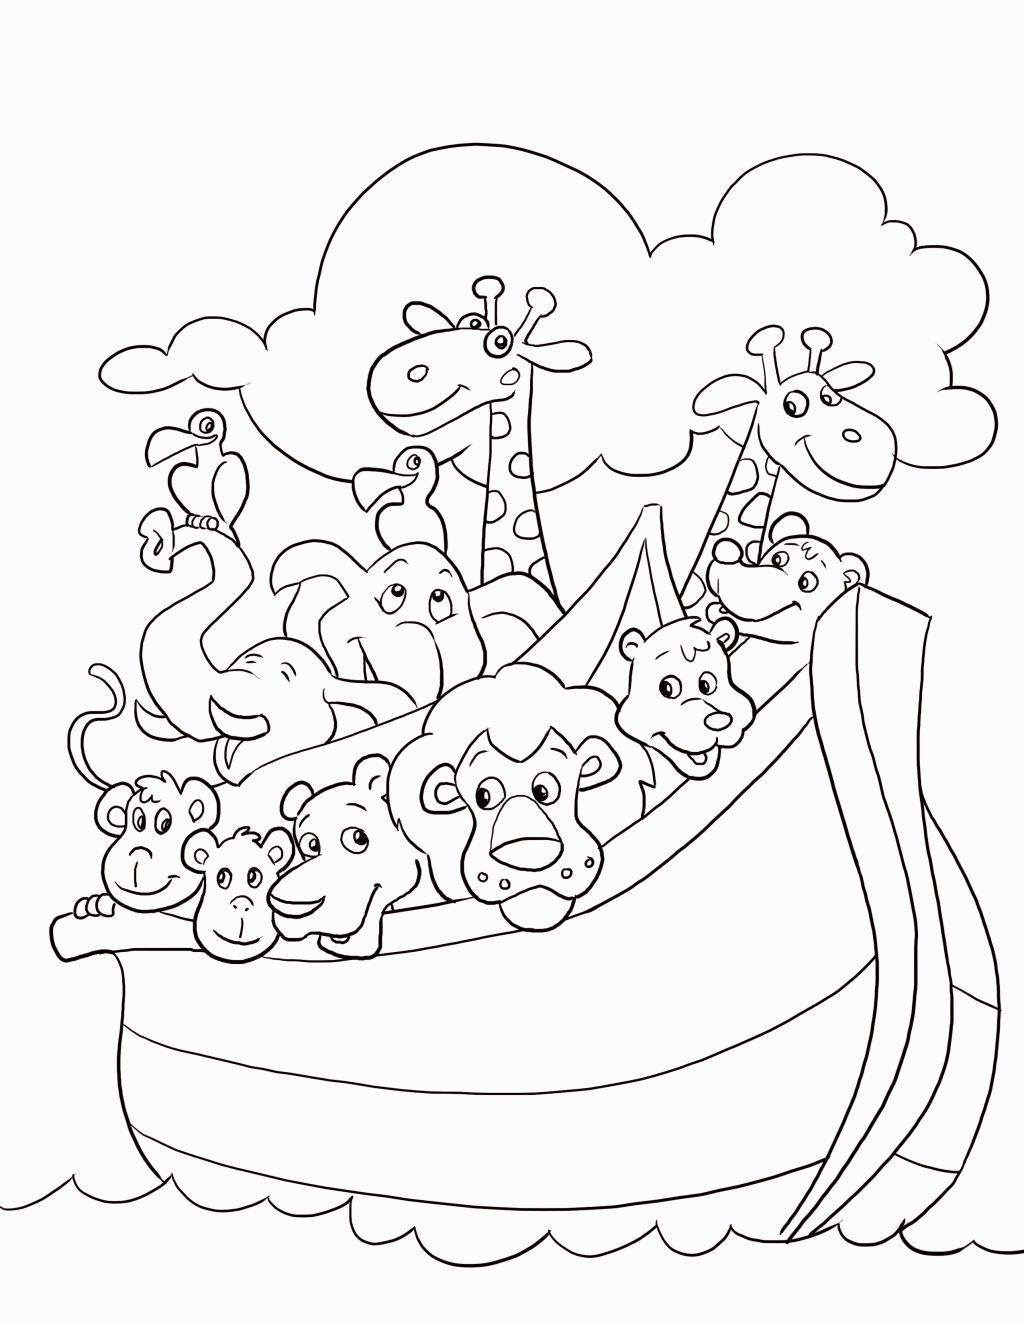 preschool bible coloring pages # 2